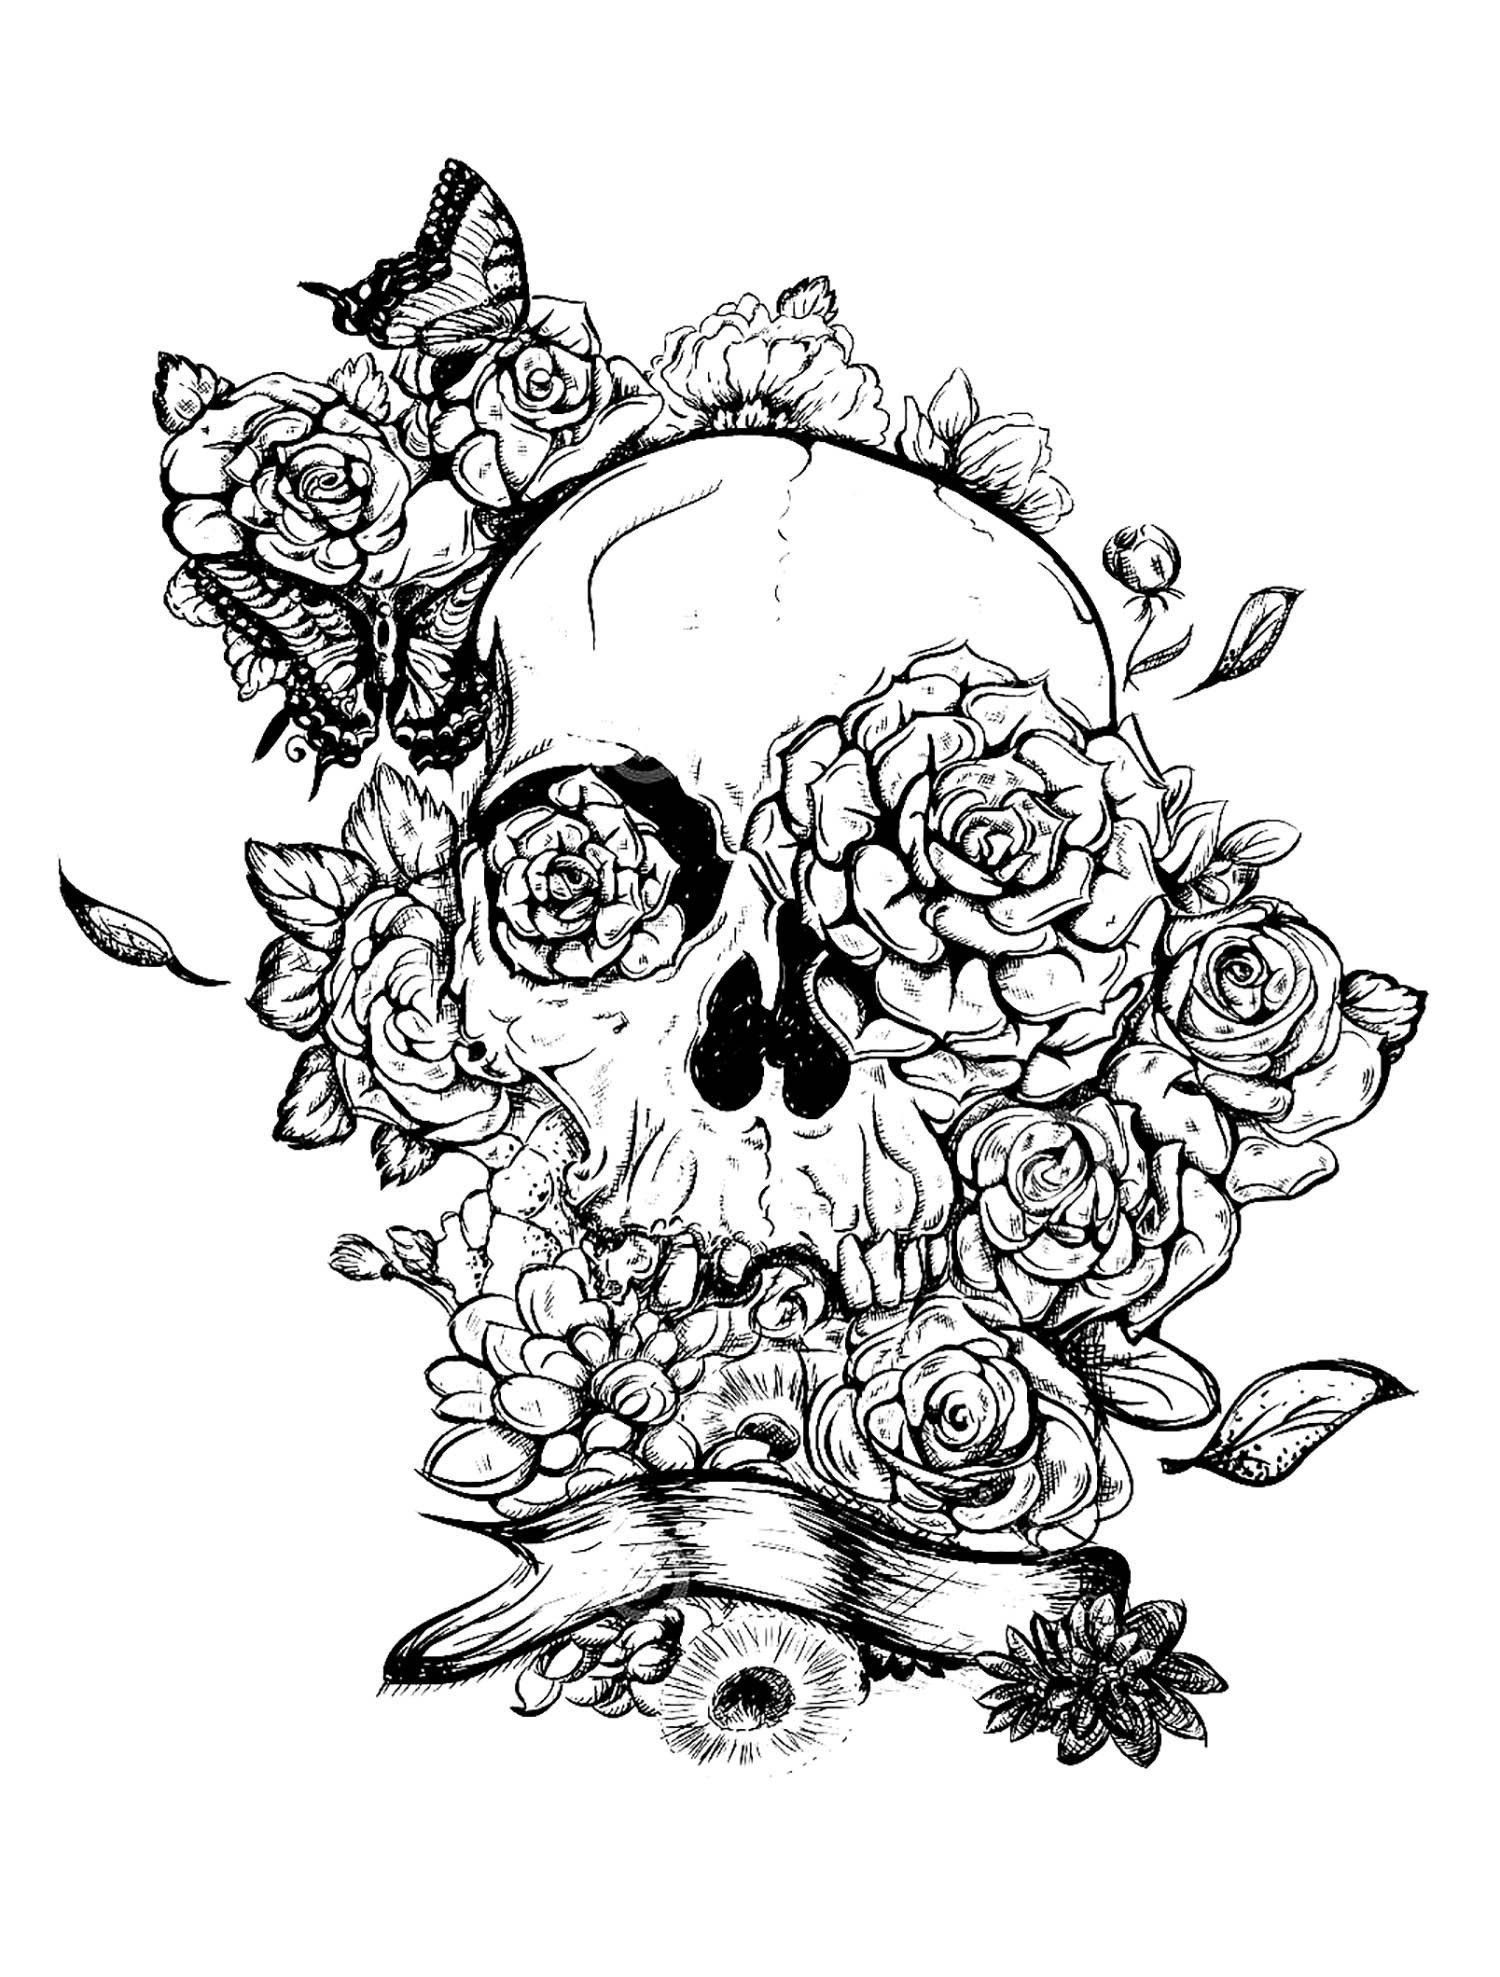 Skull Coloring Pages For Adults Beautiful Coloring Sugar Skulls Unique 25 Free Printable Skull Co In 2020 Skull Coloring Pages Coloring Book Art Mandala Coloring Pages